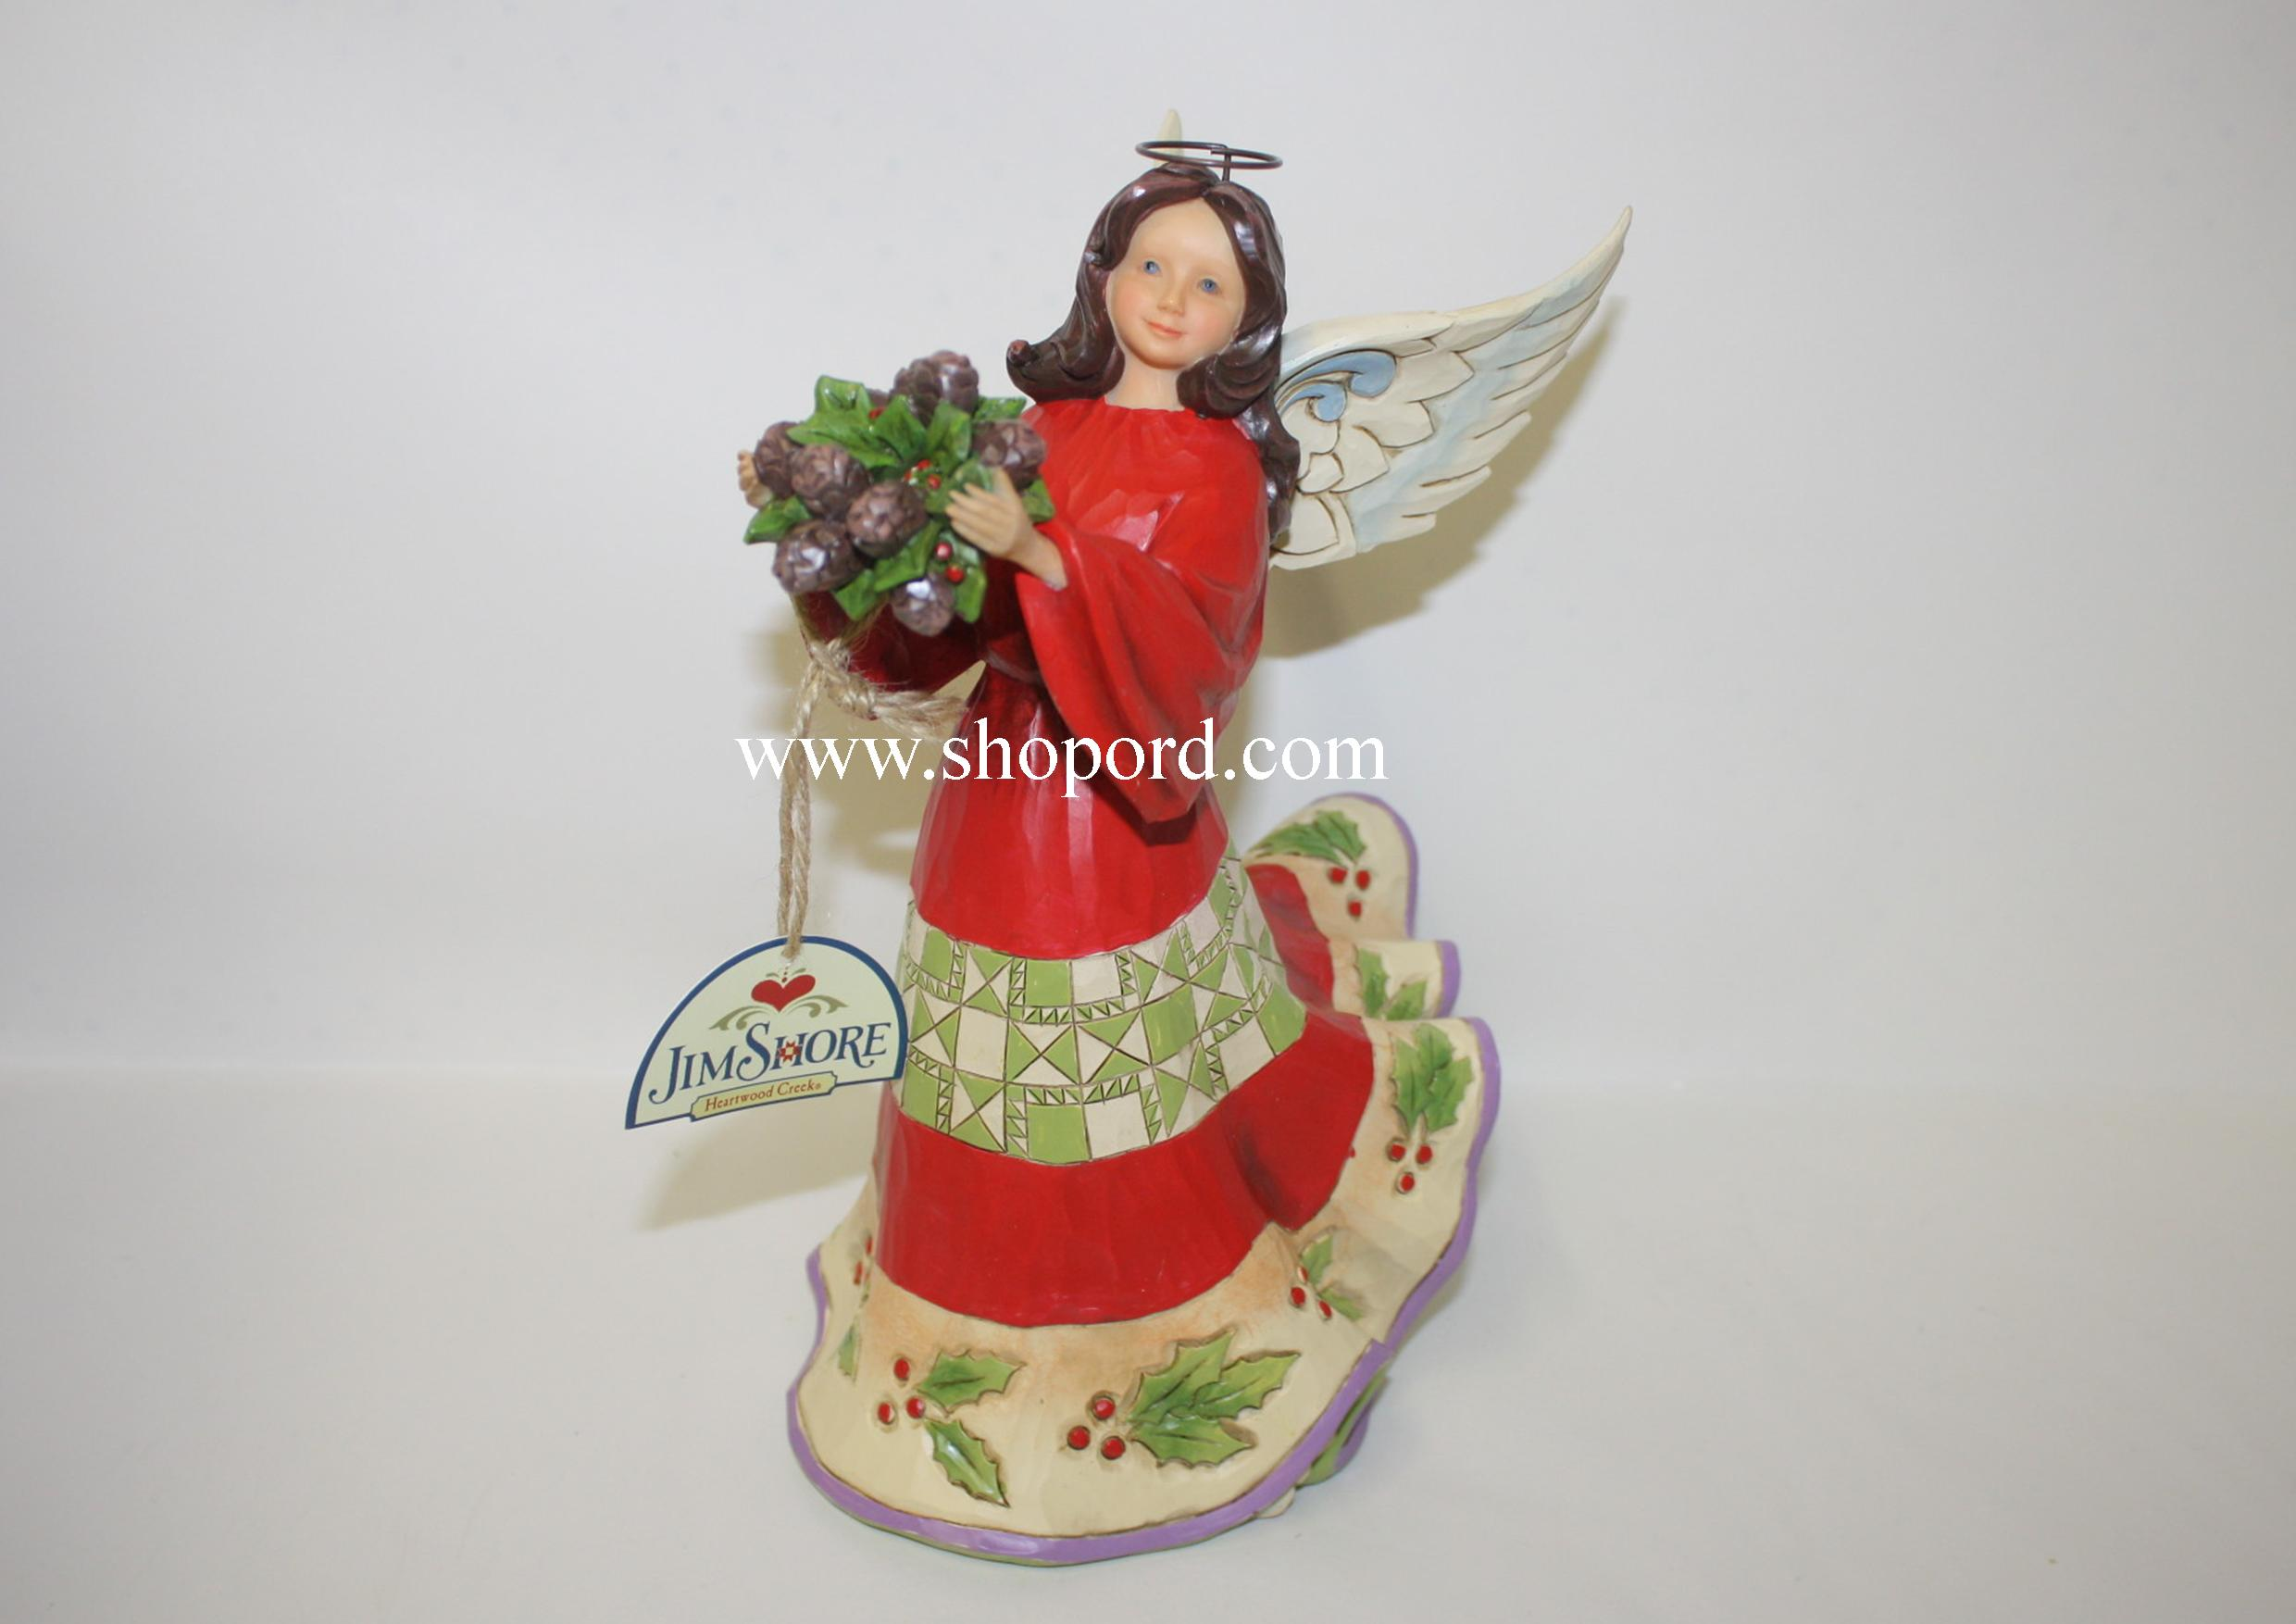 Jim Shore Naturally Festive Red Green Angel With Holly Figurine 4047761